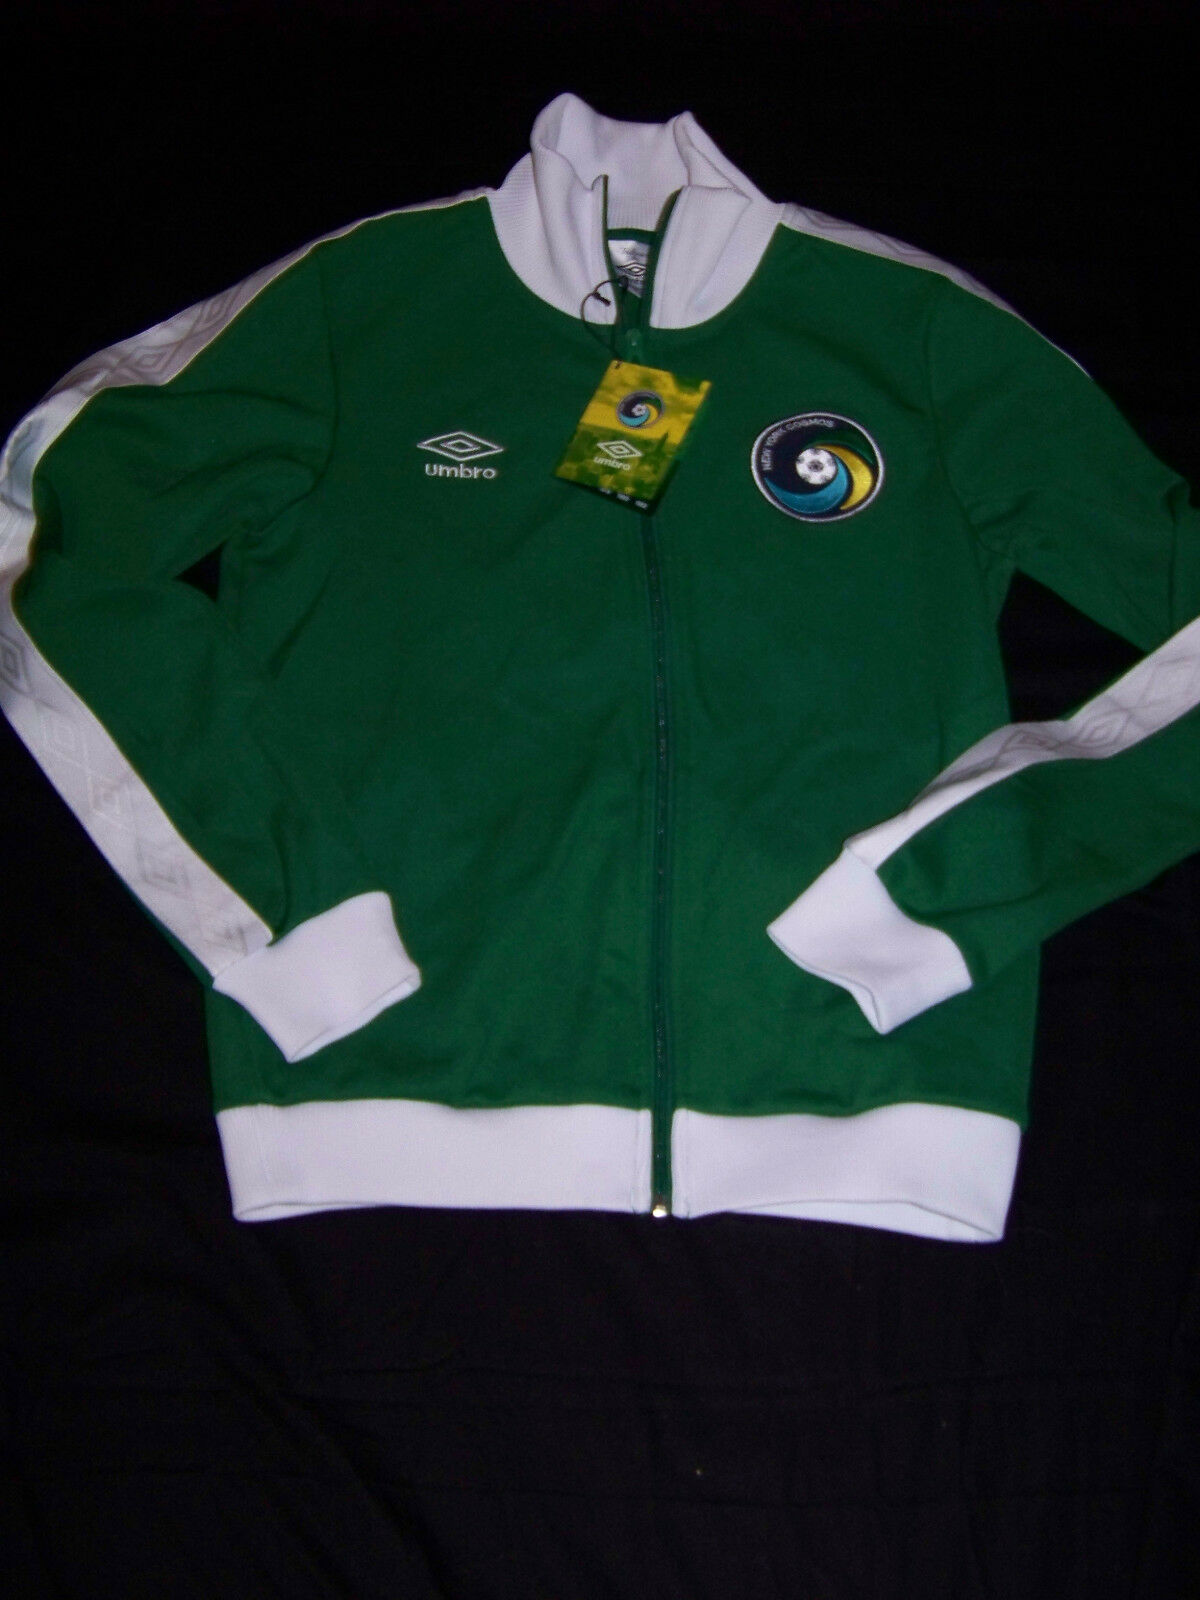 Umbro Men's York Cosmos Jacket Retail $90